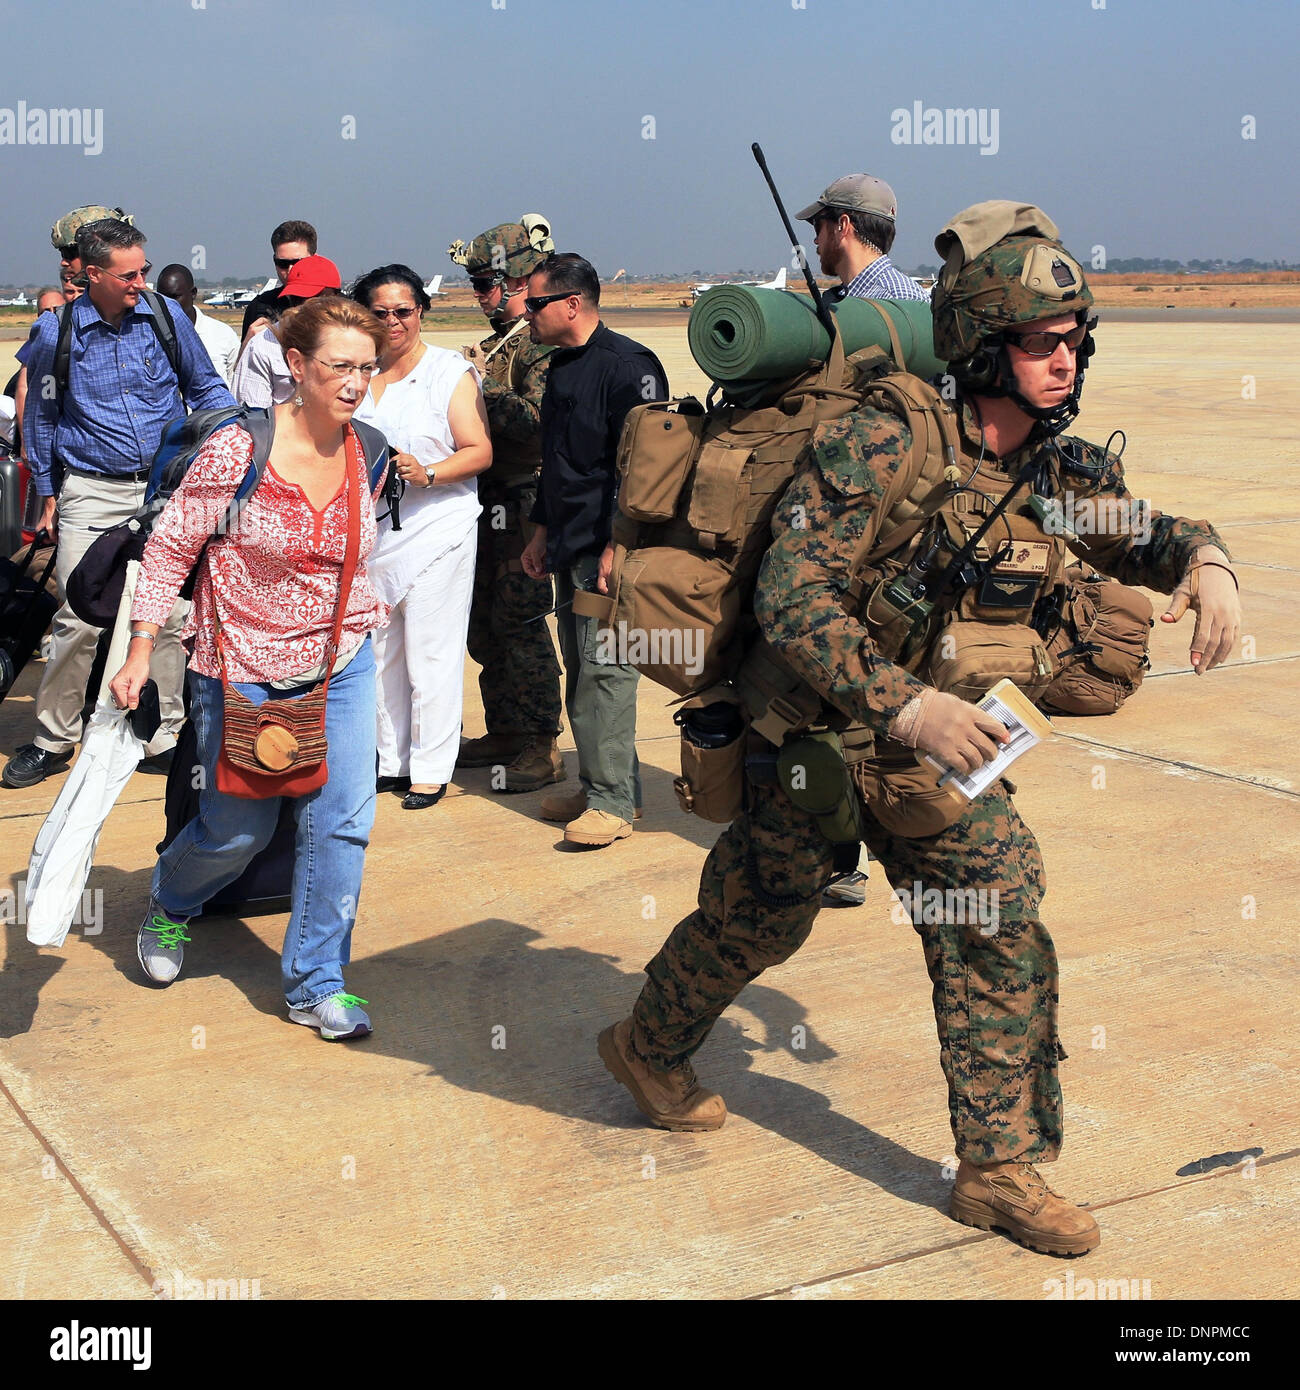 A US Marine from the Crisis Response team guides American citizens to an evacuation flight January 3, 2014 in Juba, South Sudan. The Marines evacuated more than 20 personnel from the U.S. Embassy as conflict escalates in South Sudan following a failed coup attempt. - Stock Image